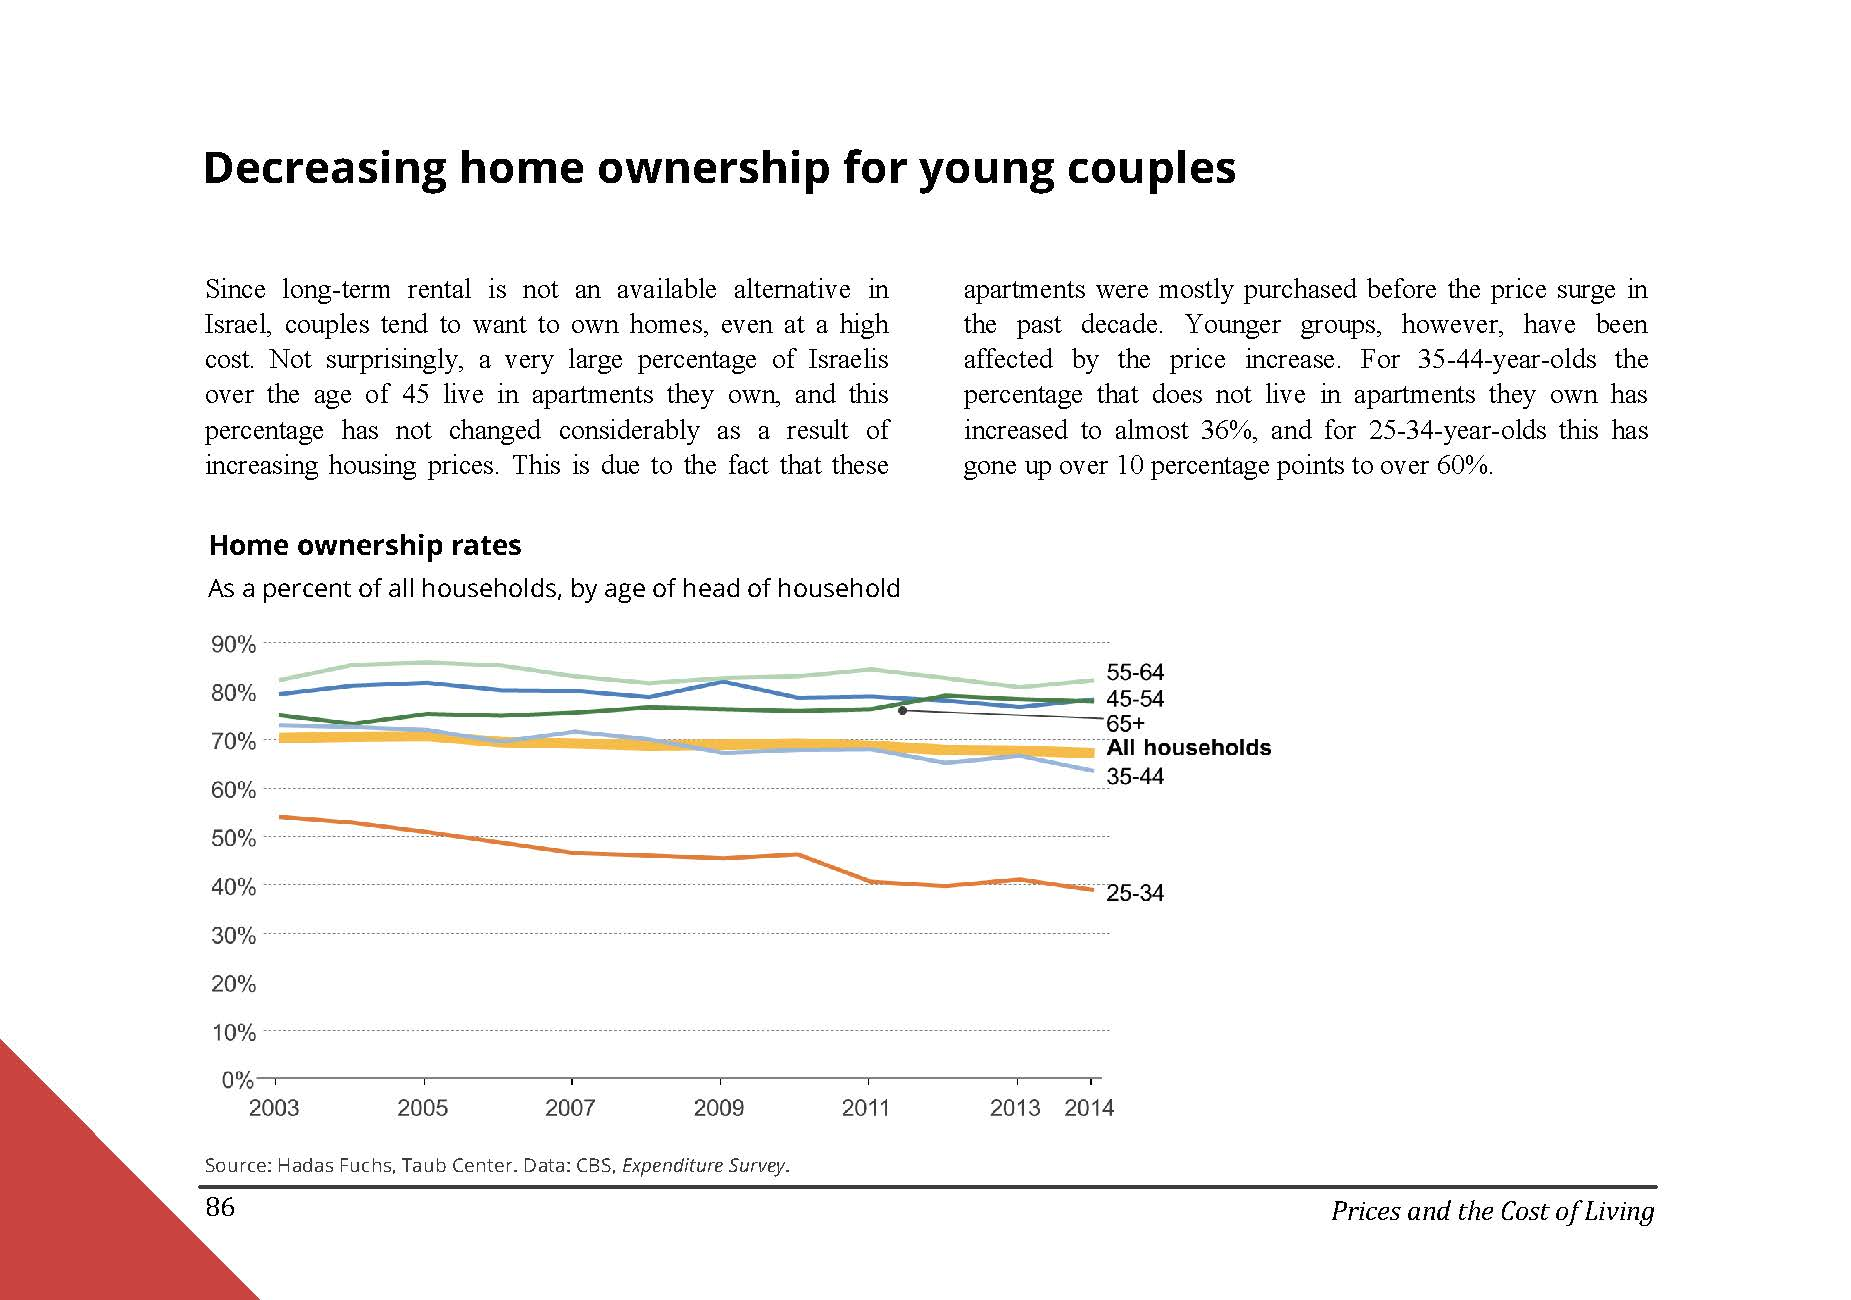 Decreasing home ownership for young couples in Israel